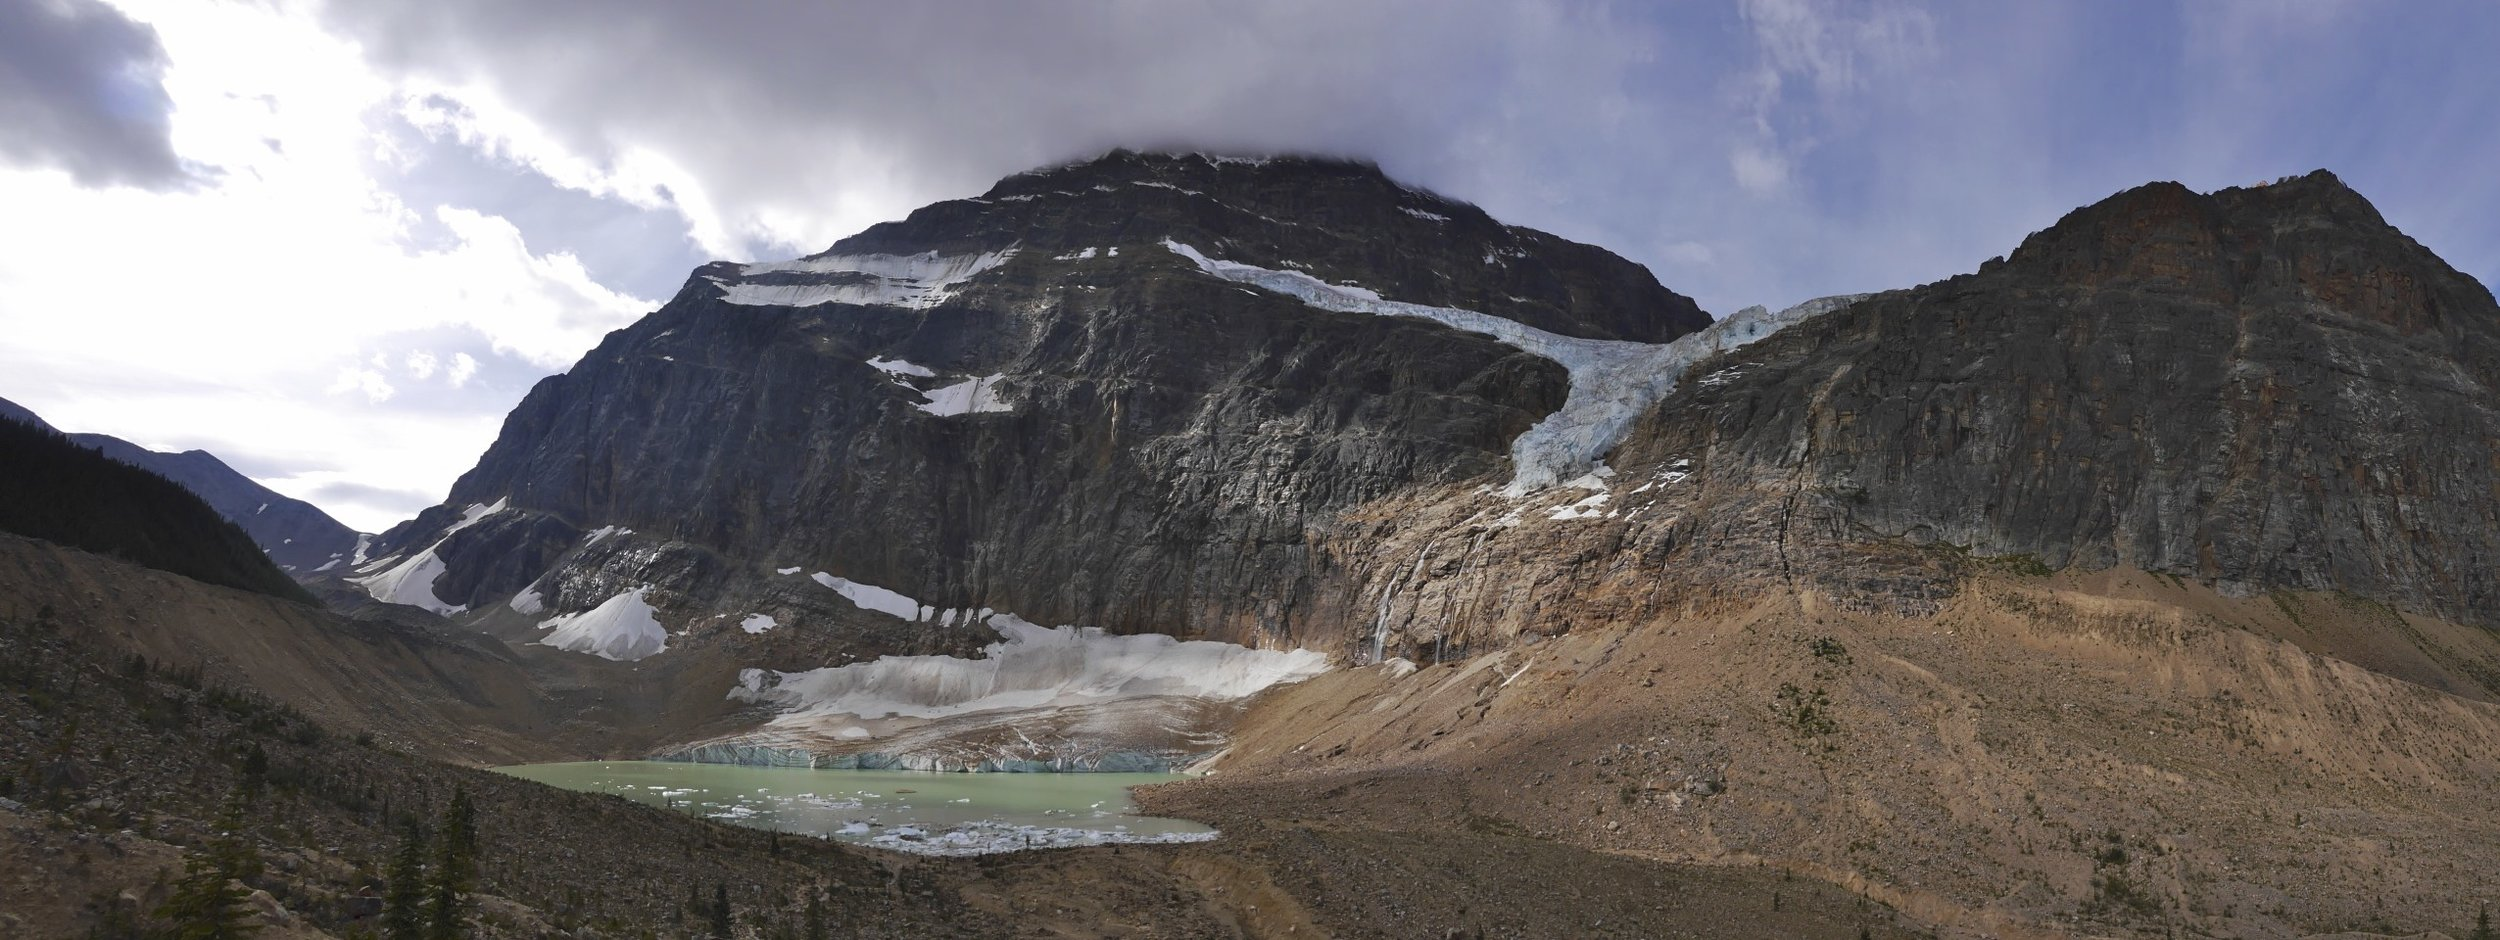 Mt. Edith Cavell at the start of the trail to the Tonquin Valley